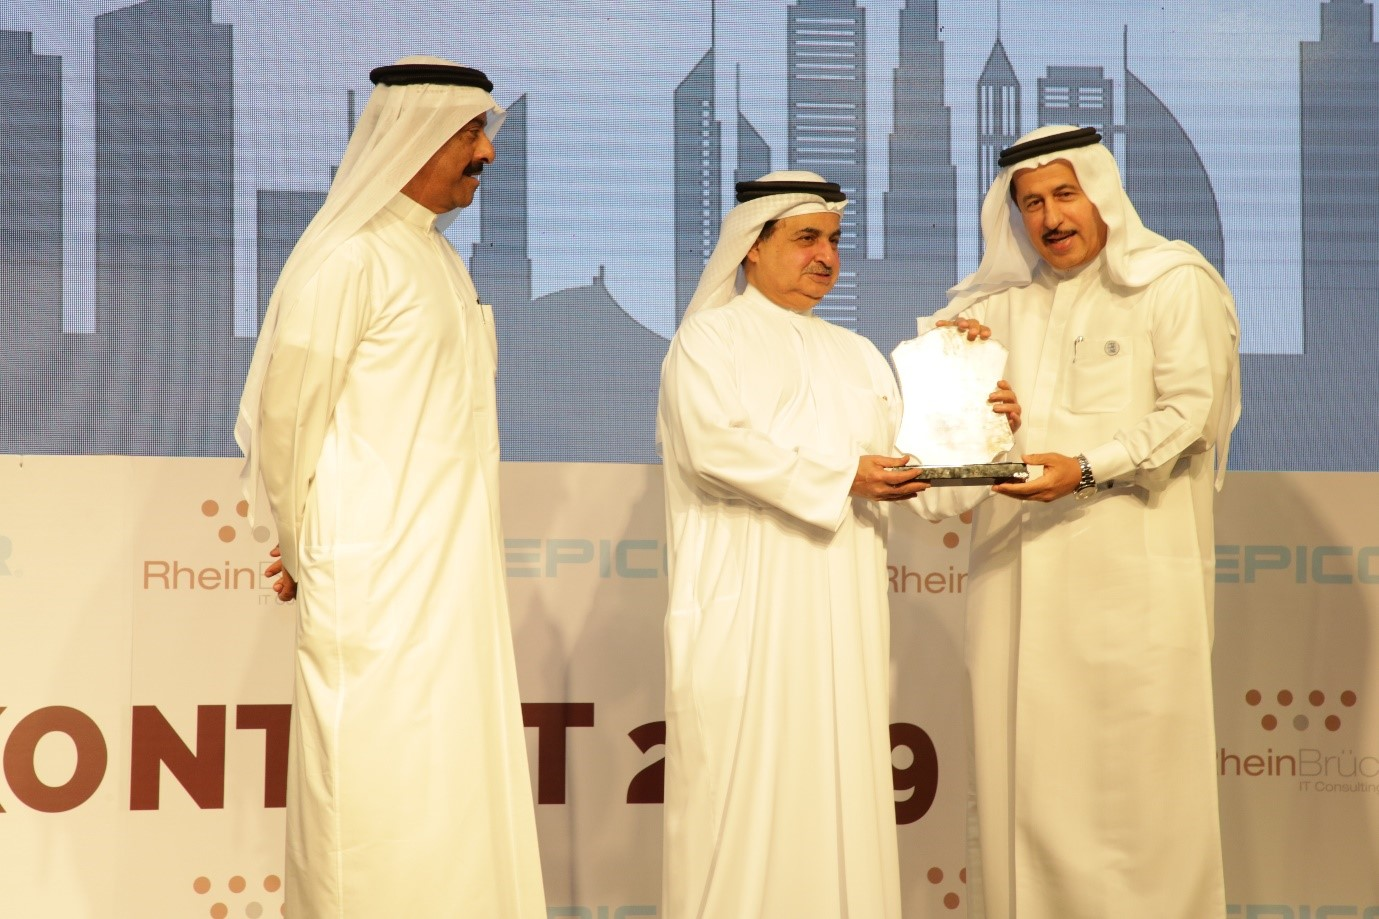 His Excellency Abdulqader Obaid Ali for Excellence in Technology